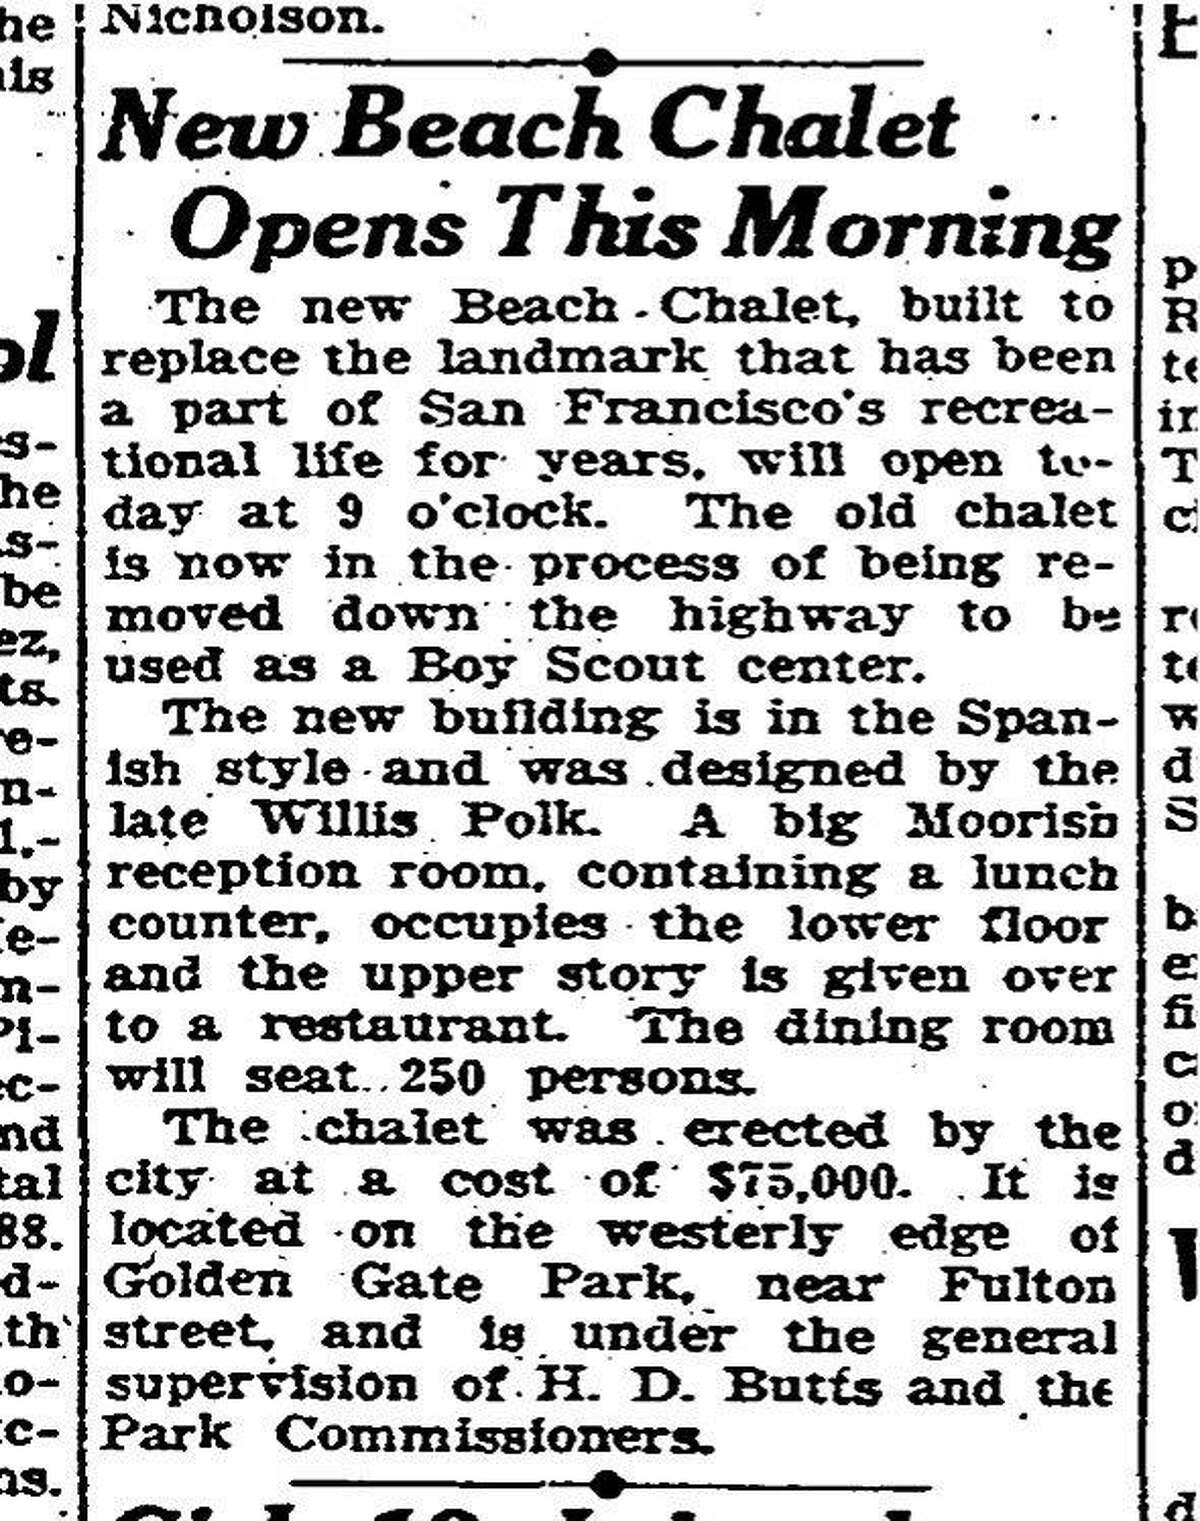 The May 30, 1925 Chronicle reports on the opening of the Beach Chalet, a Spanish-style building designed by Willis Polk.